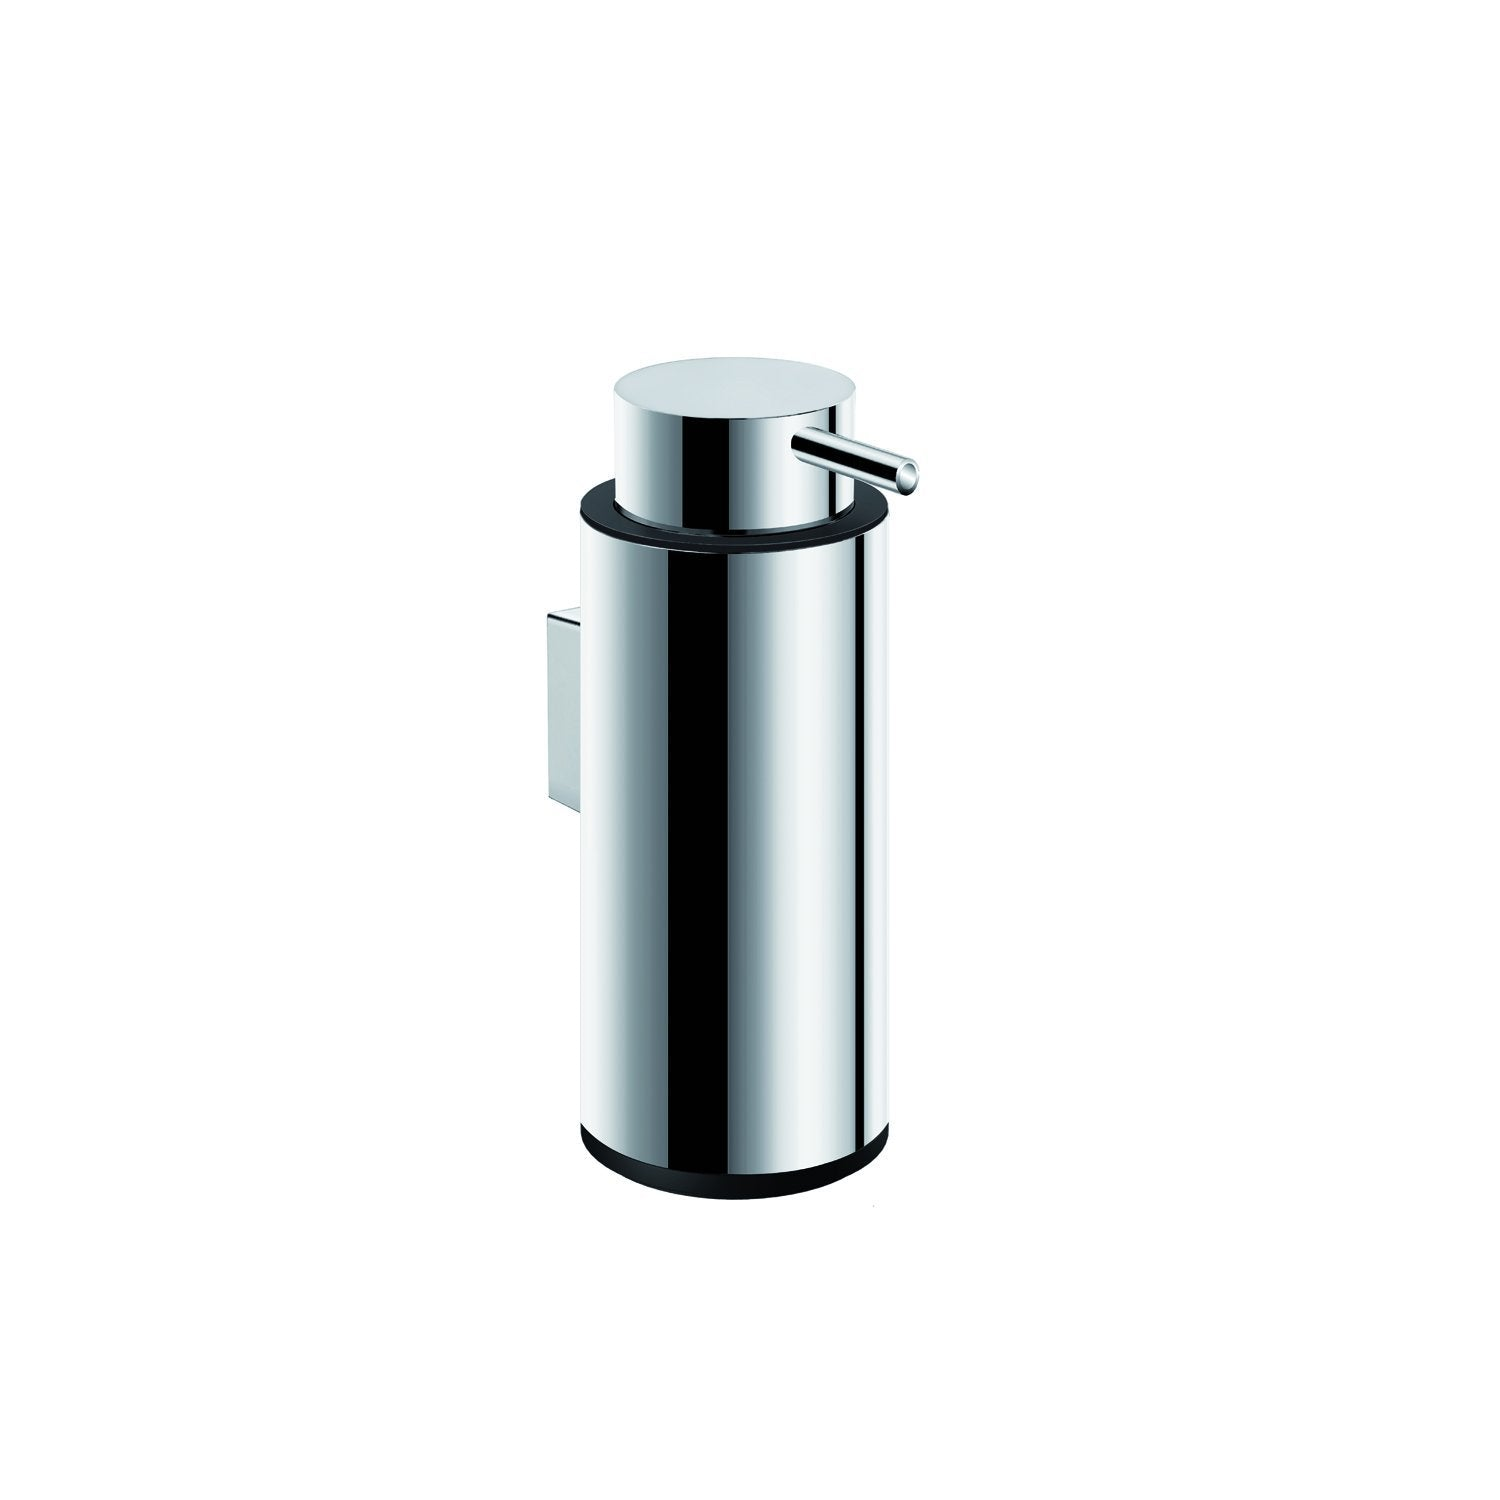 COSMIC Logic Soap Dispenser, Wall Mount, Stainless Steel Body, Chrome Finish, 2-3/8 x 6-1/2 x 2-3/8 Inches (2260304)